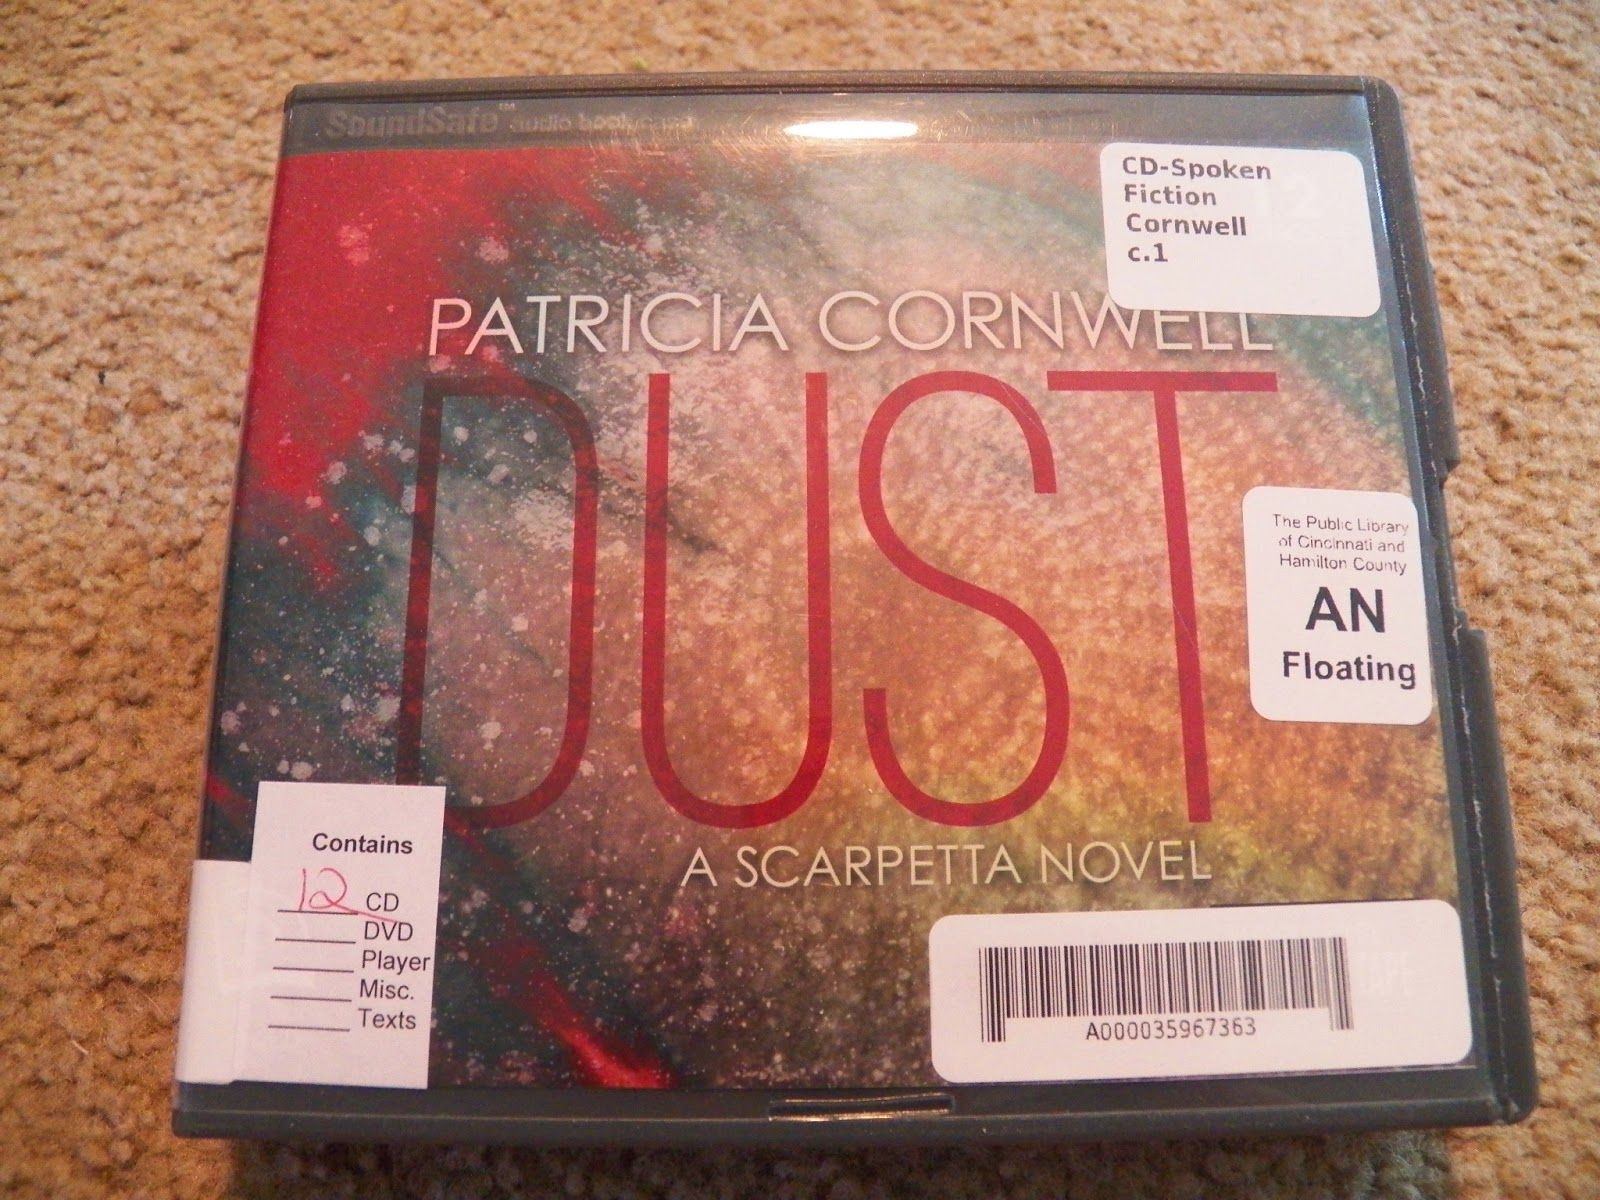 http://www.amazon.com/Dust-Scarpetta-Novel-Patricia-Cornwell/dp/0399157573